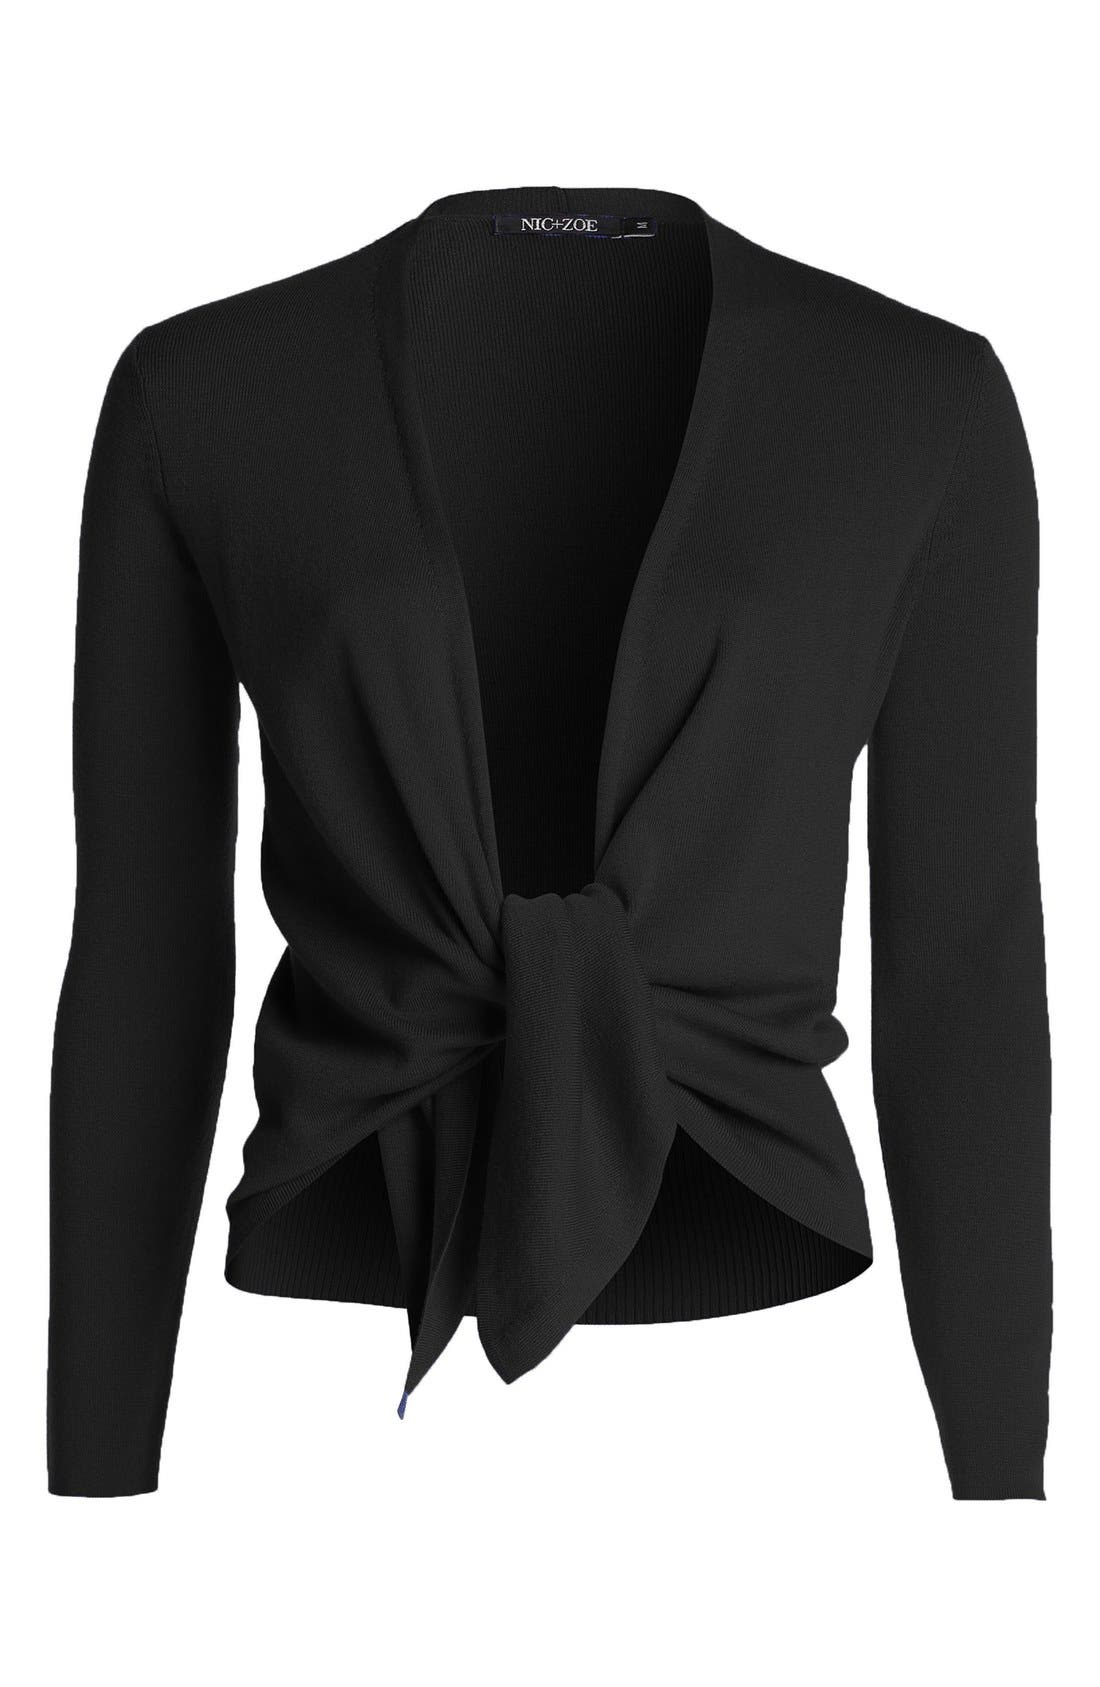 Four-Way Convertible Cardigan,                             Alternate thumbnail 5, color,                             Black Onyx